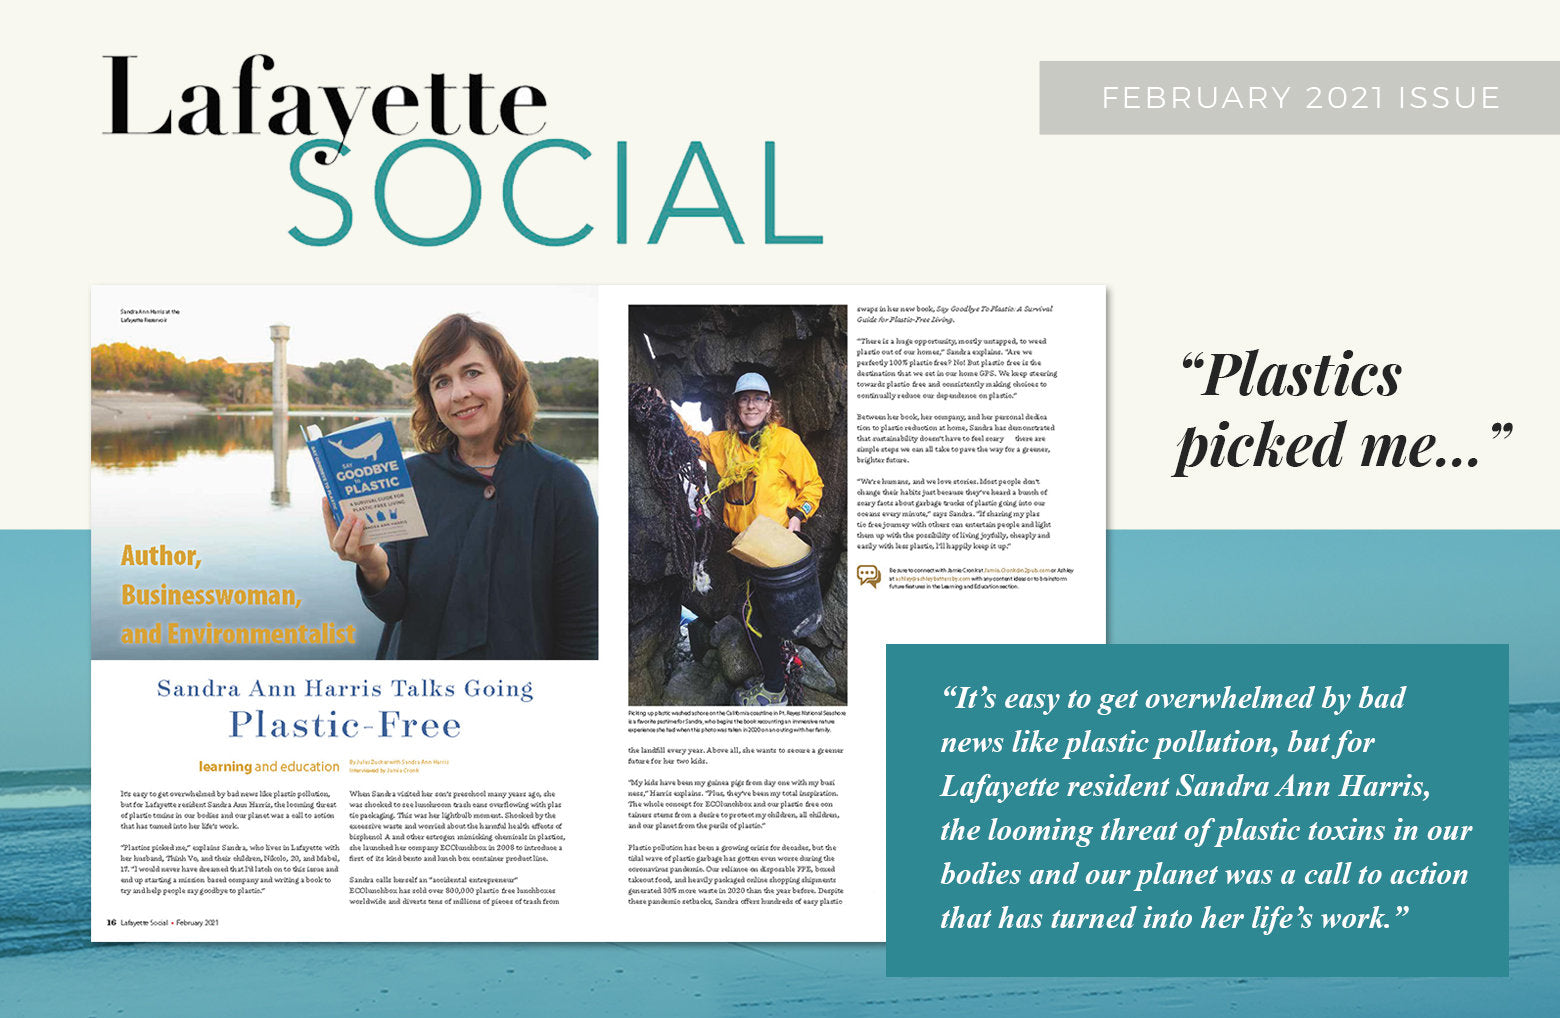 Lafayette Social February 2021 article preview.